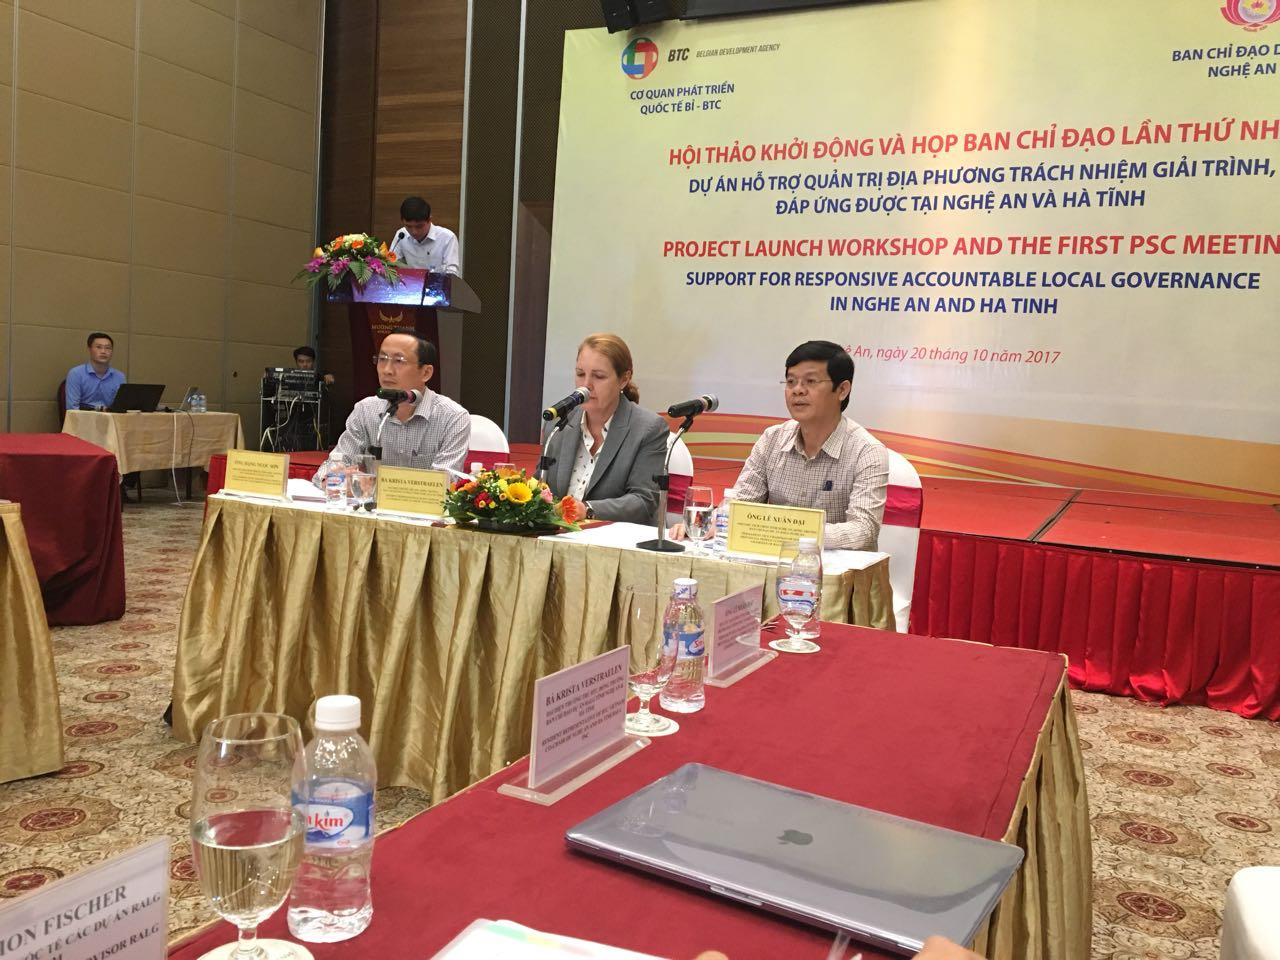 Support for responsive accountable local governance in Ha Tinh Province, Vietnam